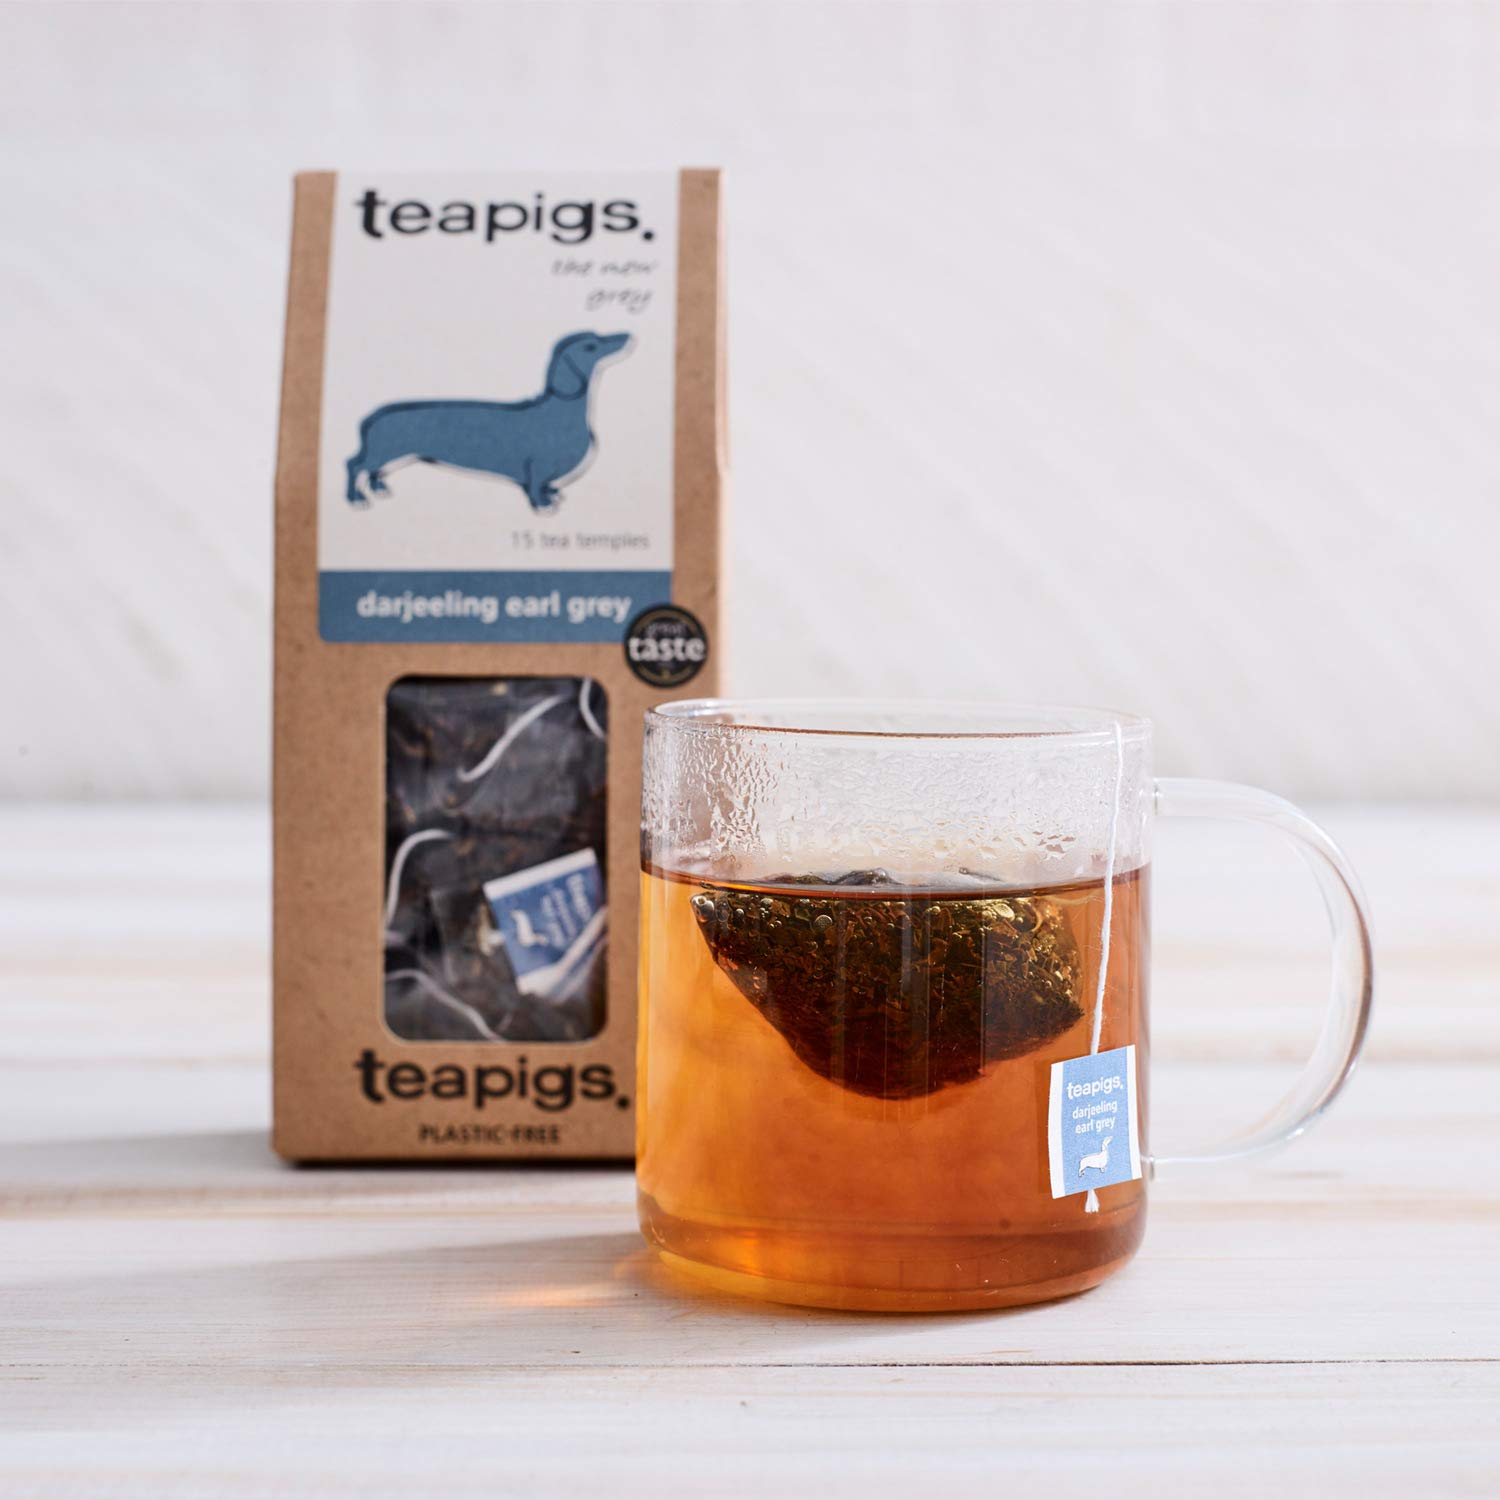 Teapigs Darjeeling Earl Grey Tea Bags Made with Whole Leaves (1 Pack of 50 Tea Bags)